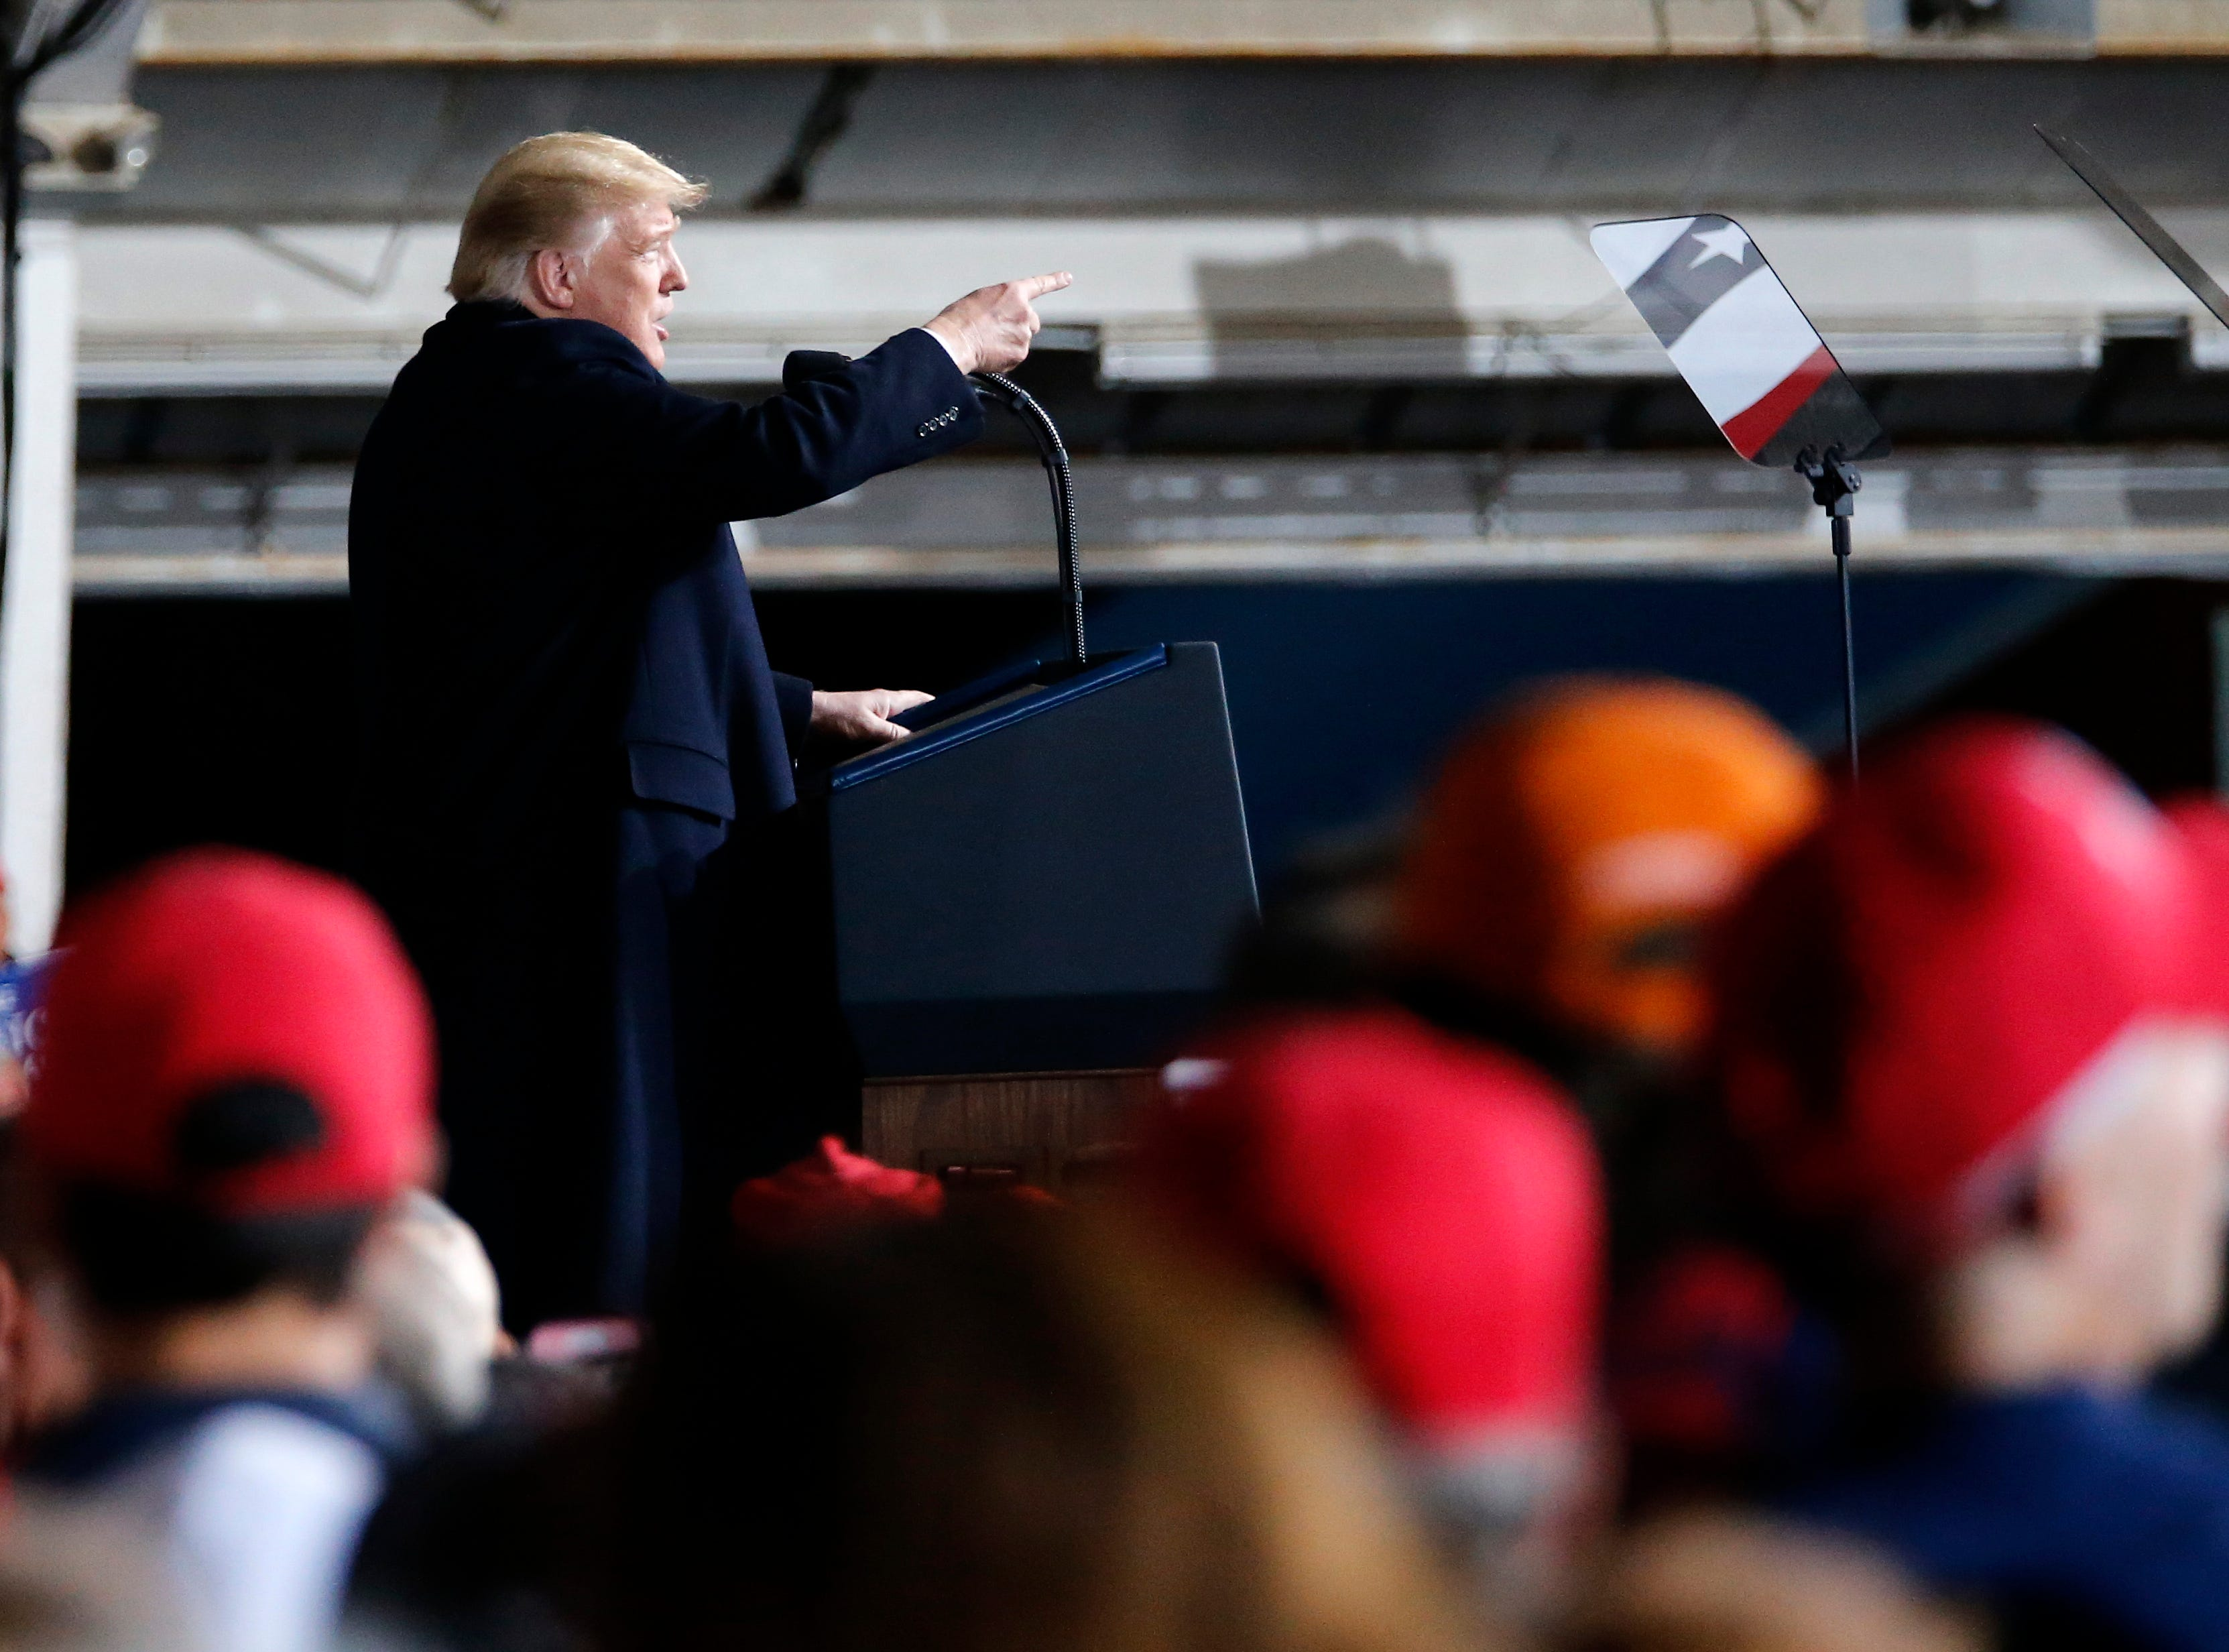 President Donald Trump points toward the press risers in the back of the room during a Make America Great Again rally at the warren County Fair Grounds in Lebanon, Ohio, on Friday, Oct. 12, 2018.